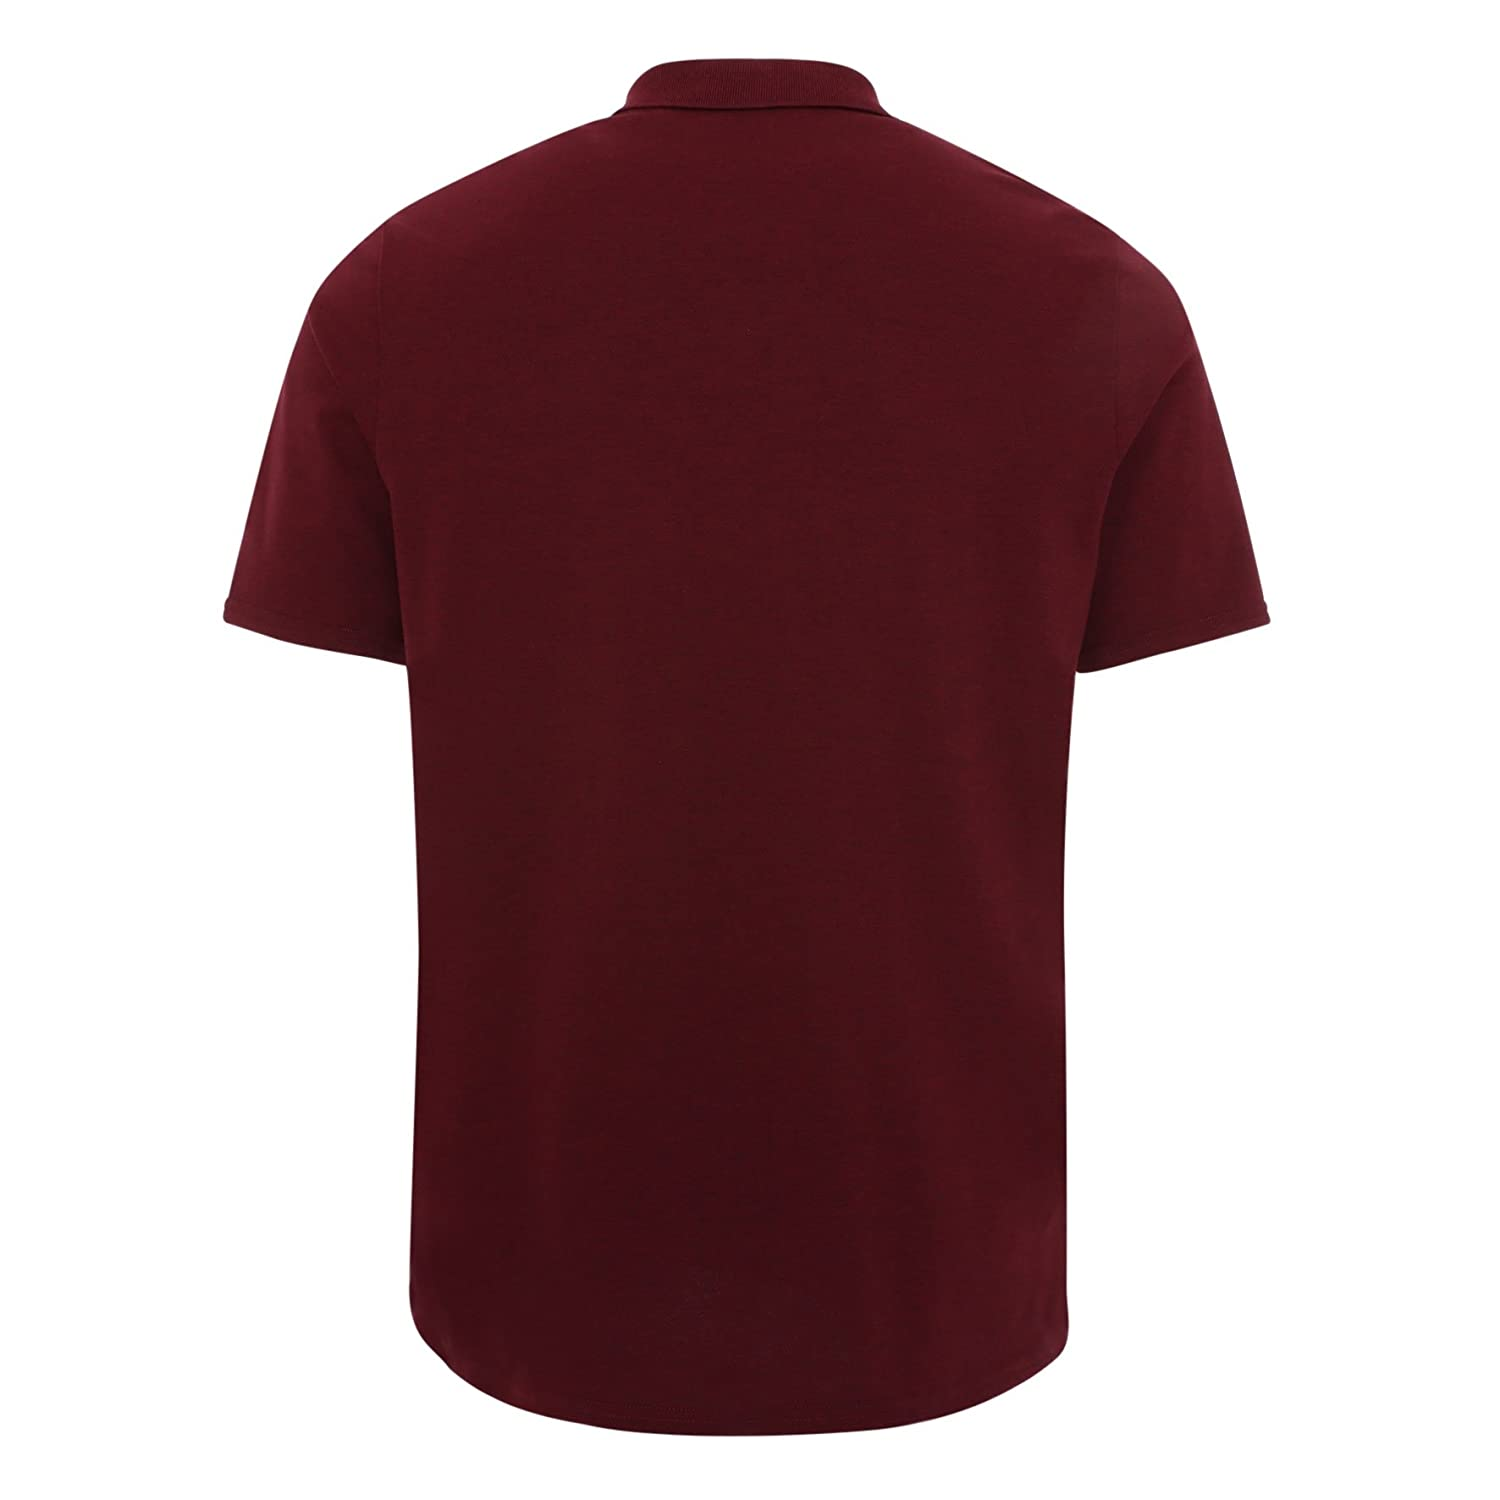 9bd577a6f New Balance Liverpool FC Collection 2018  2019 Training Kit Red Short  Sleeve Mens Marl Leisure ...